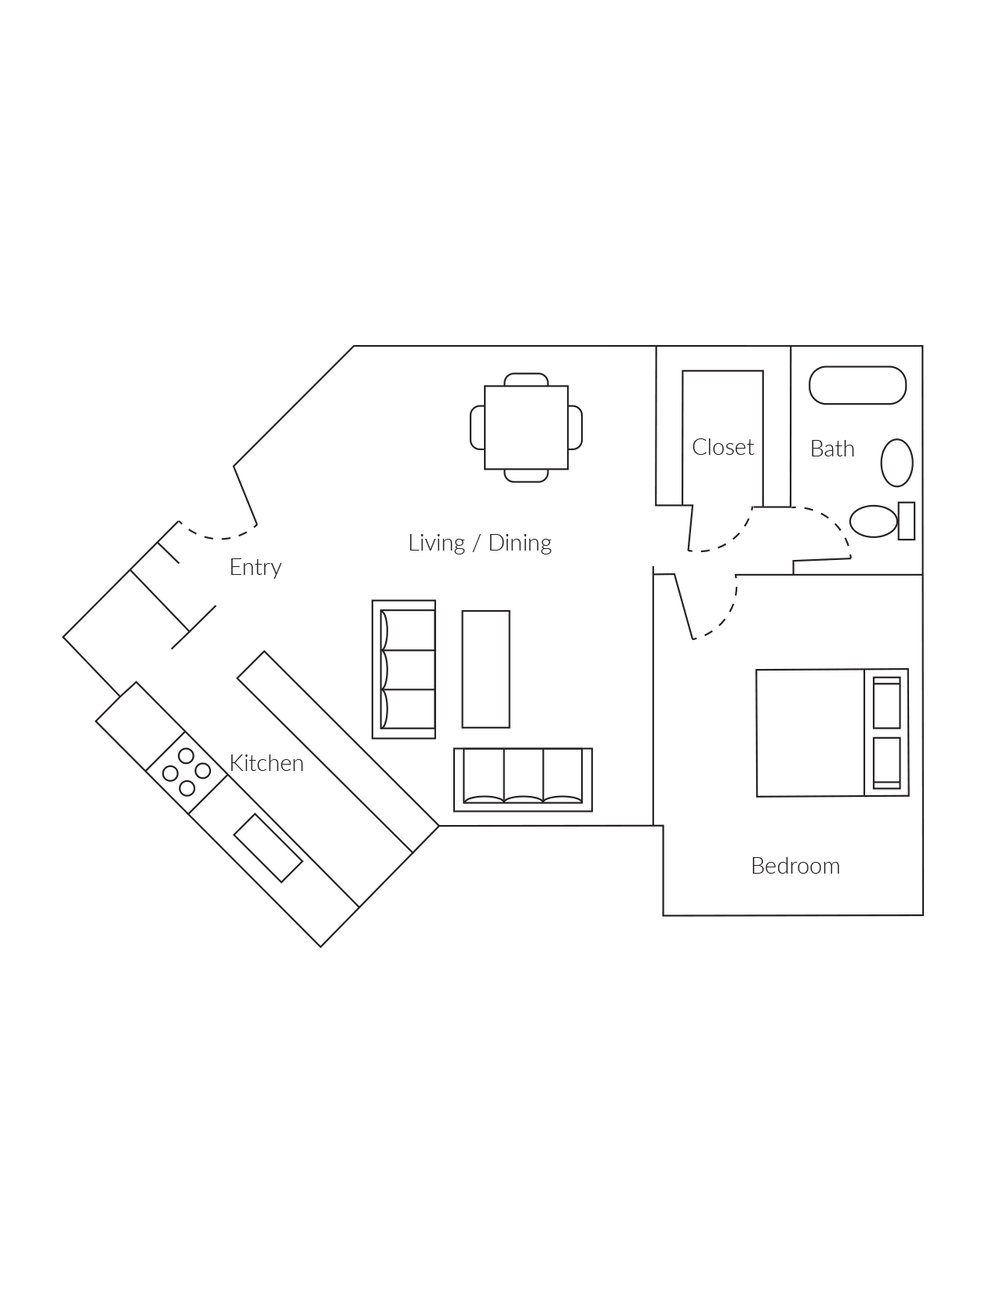 1 bedroom, 1 bathroom apartment